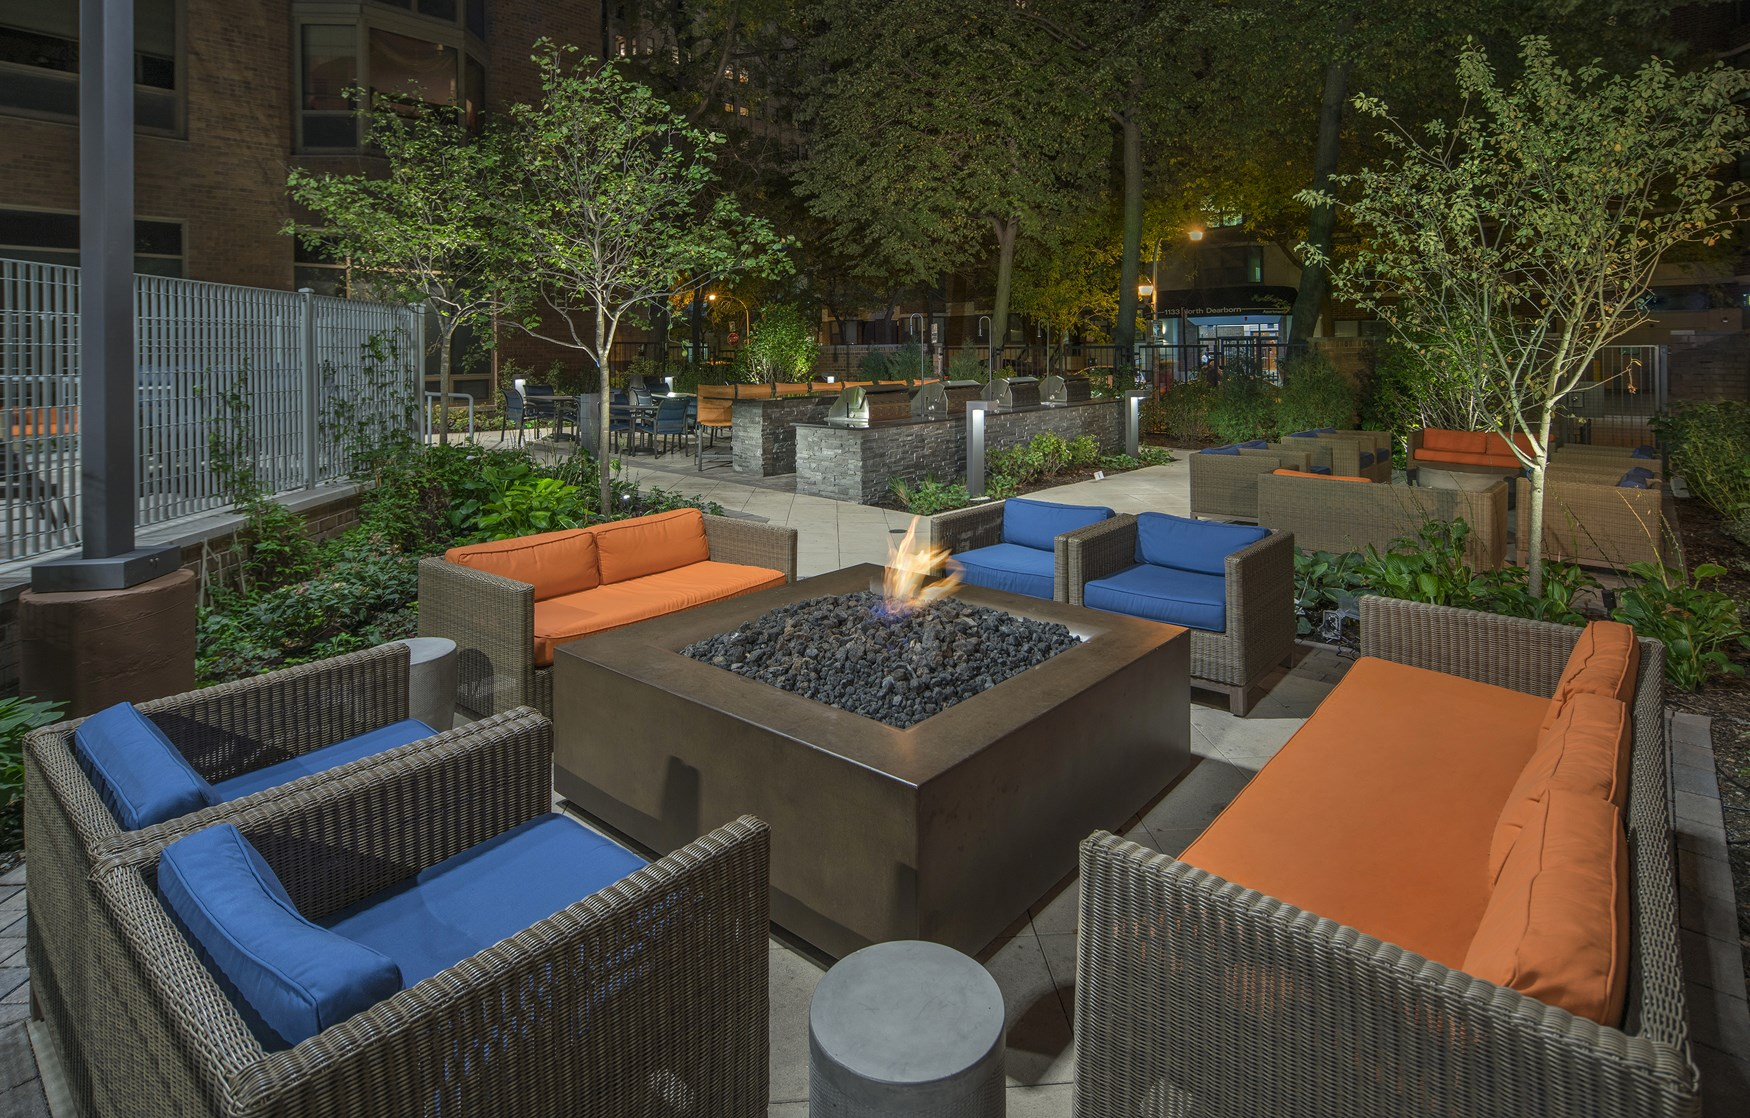 Best apartment search website in Chicago - Elm Street Plaza